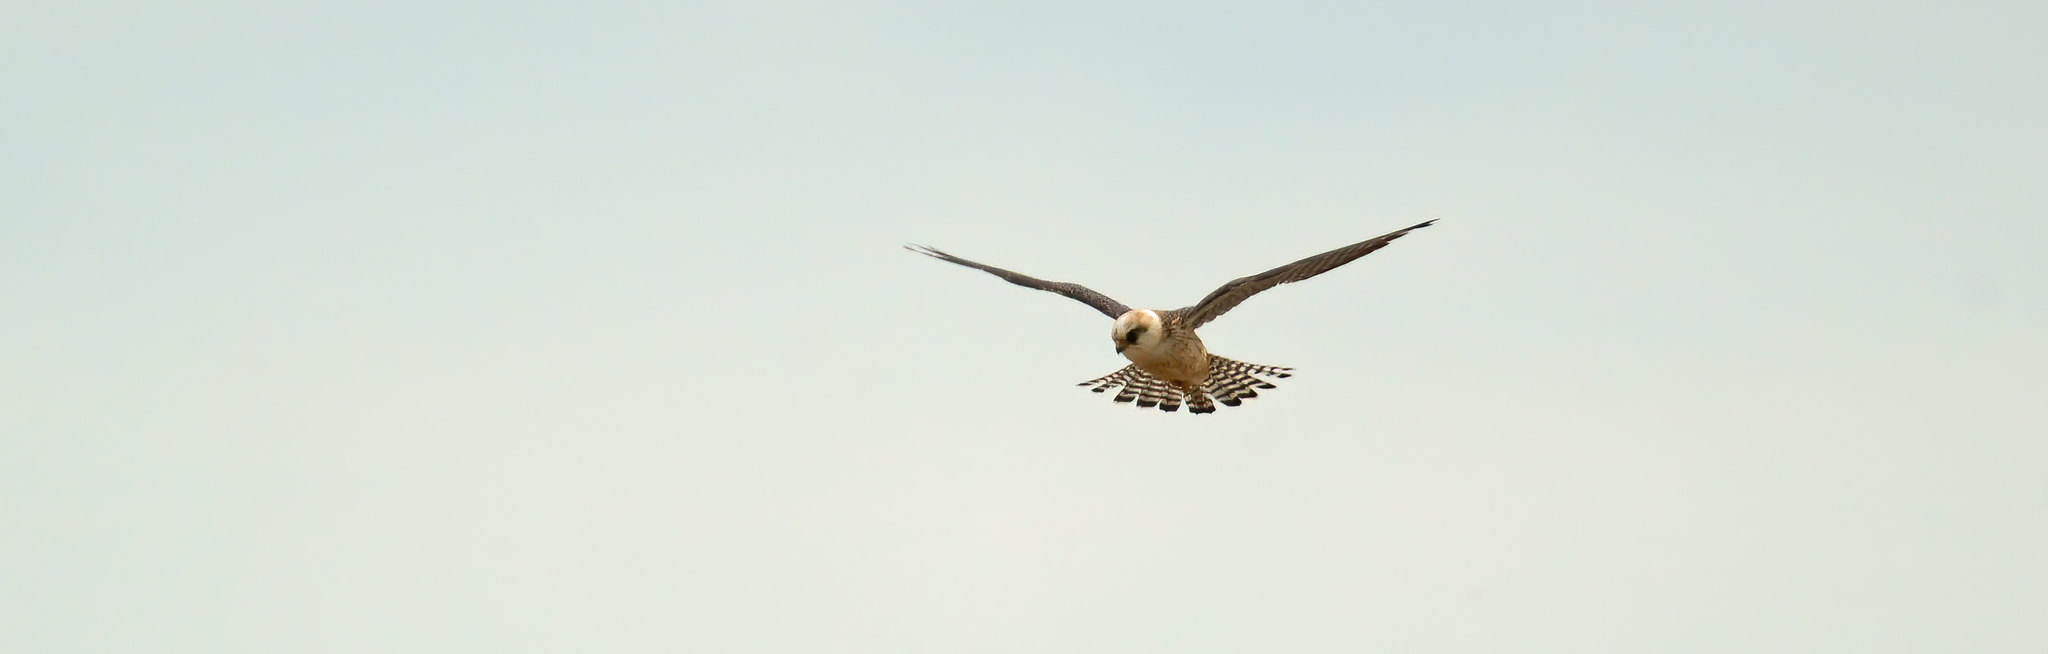 Female Red-footed Falcon - never came near